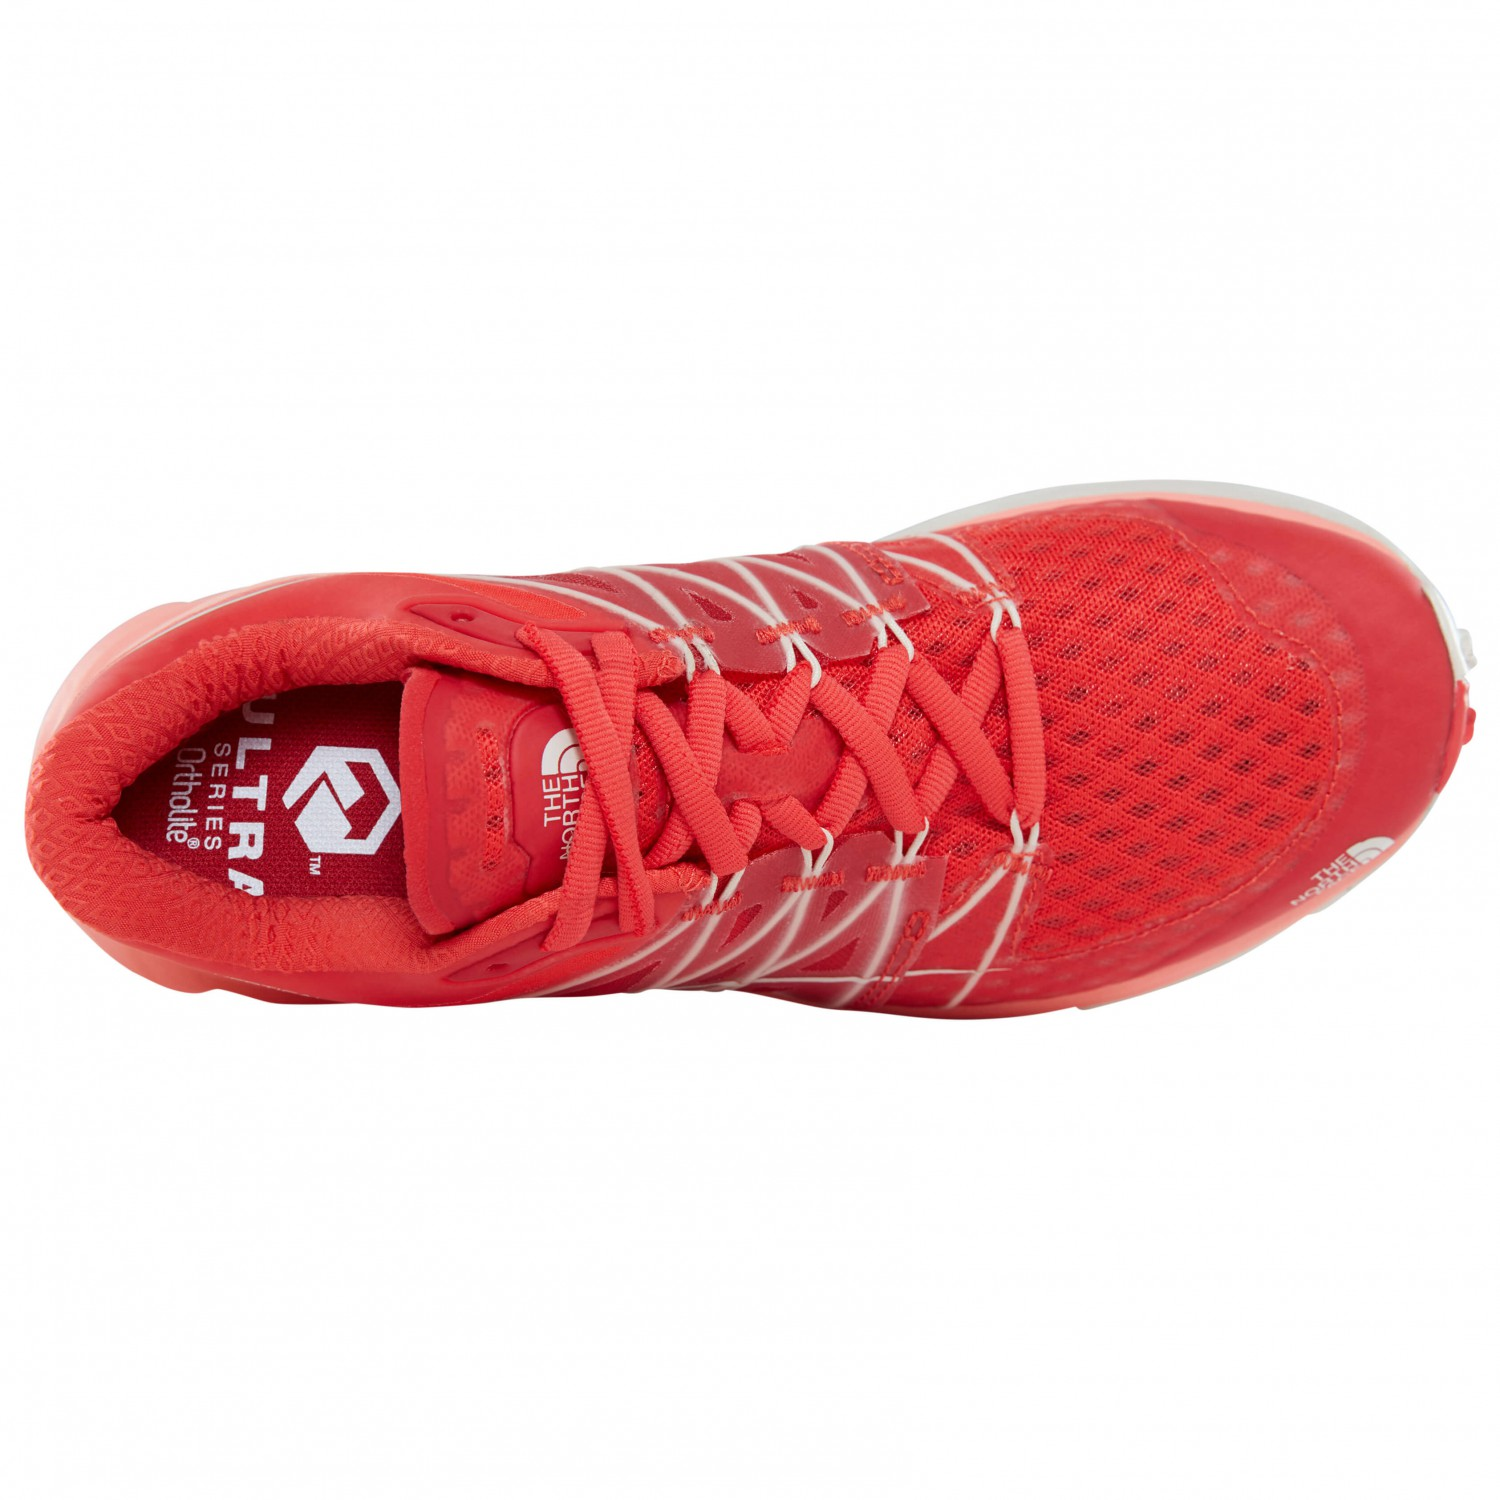 03a99dc8f The North Face - Women's Ultra Vertical - Juicy Red / Desert Flower Orange  | 6,5 (US)